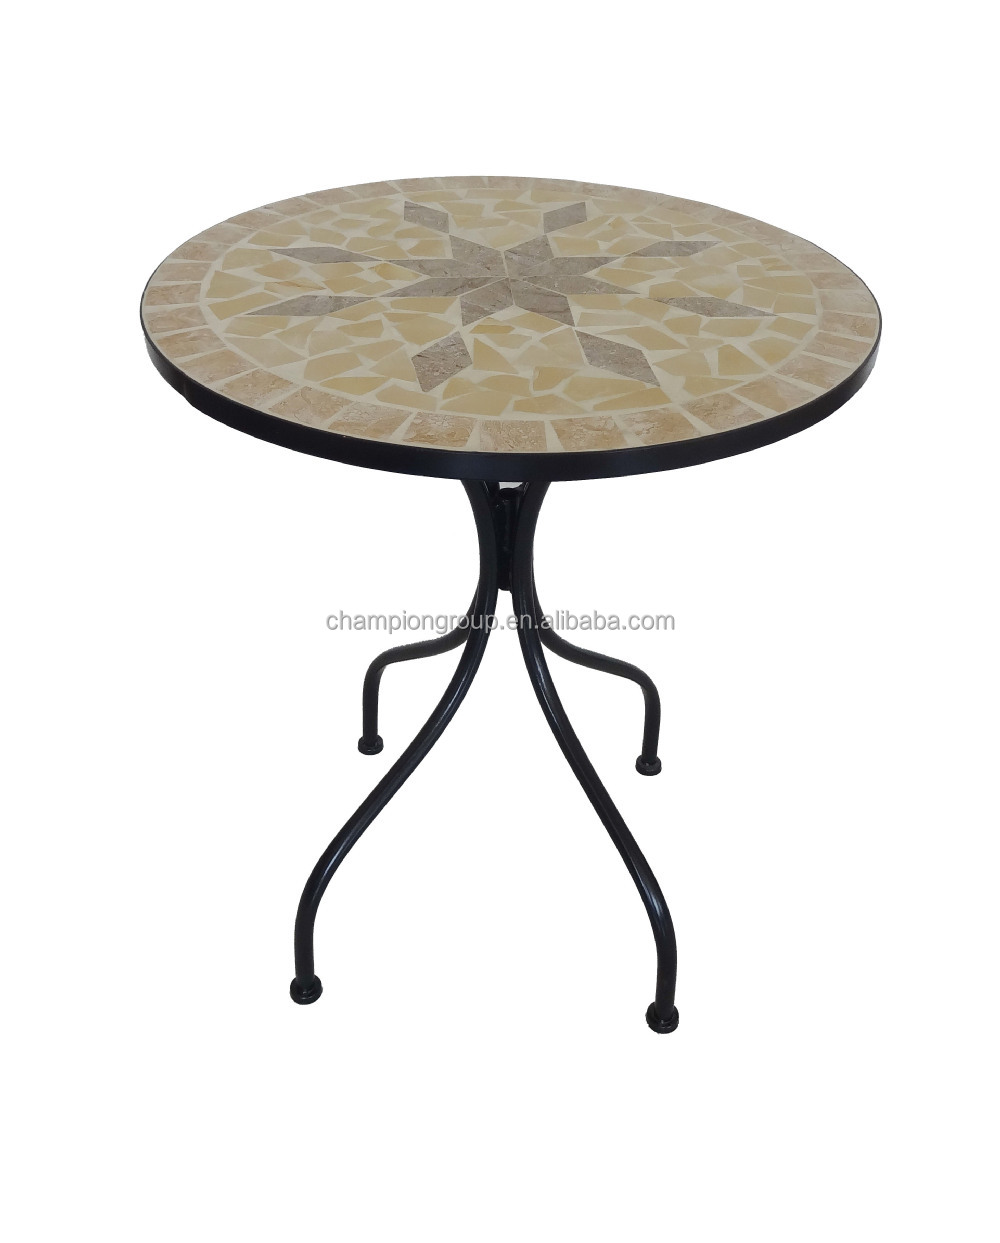 Table Bistrot Fer Forgé En Fer Forgé Mosaïque Table 3 Pcs Mosaïque Style Ensemble Bistro Mosaïque Chaise Buy Ensemble Table Et Chaise En Fer Forgé Table De Bistrot En